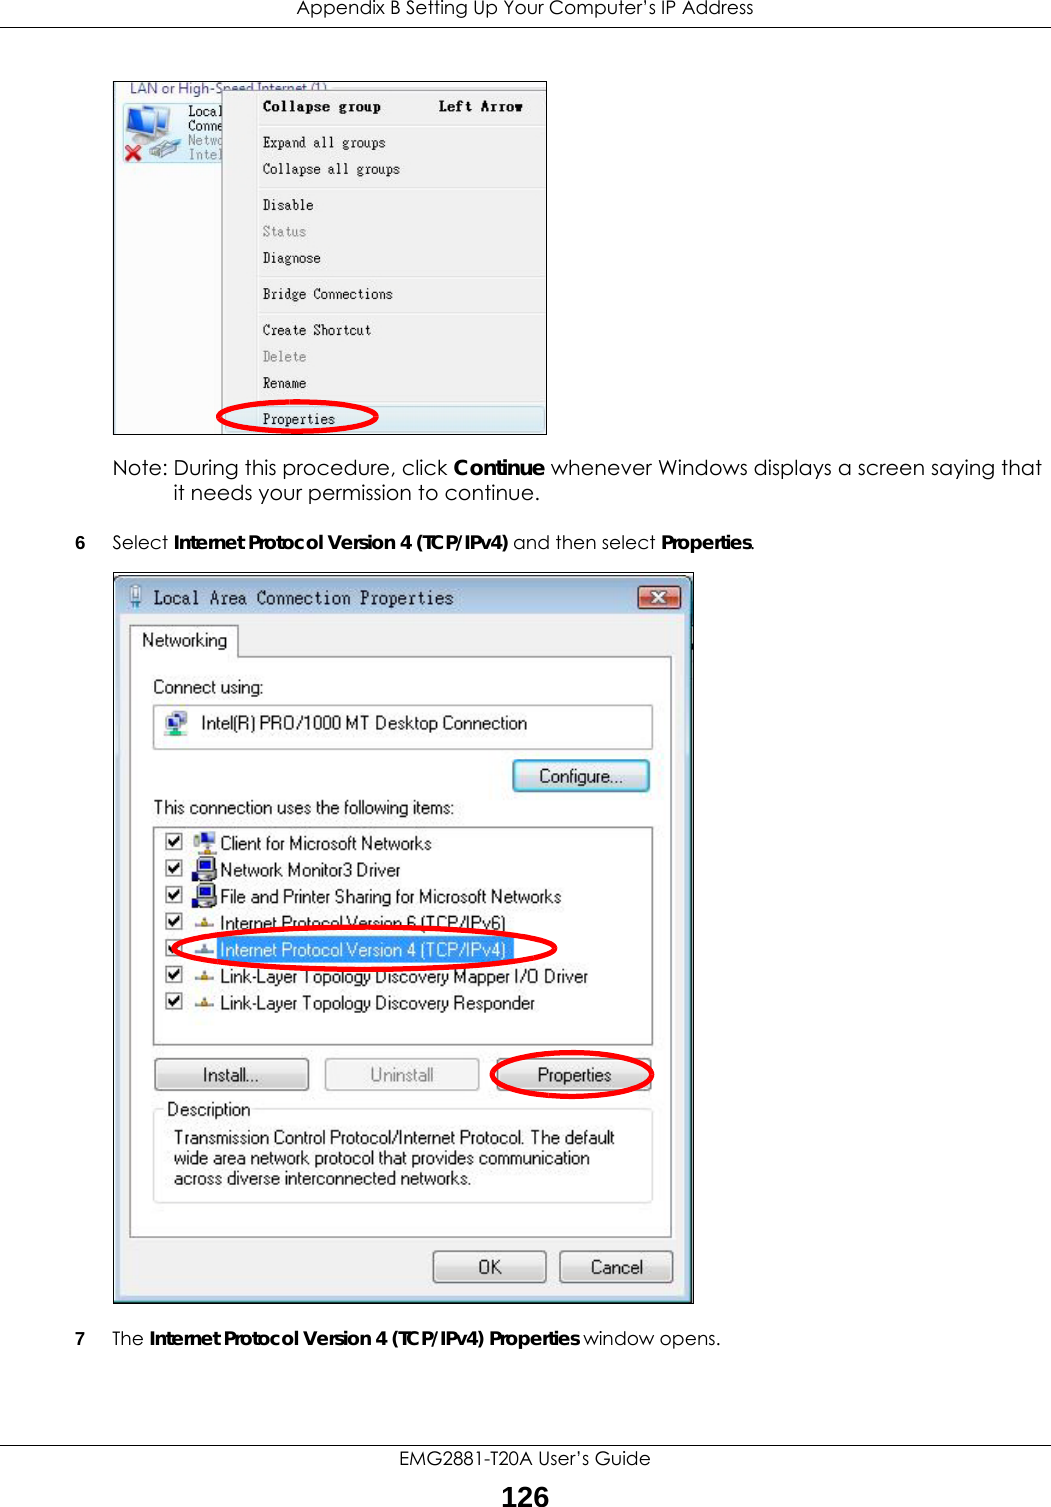 Appendix B Setting Up Your Computer's IP AddressEMG2881-T20A User's Guide126Note: During this procedure, click Continue whenever Windows displays a screen saying that it needs your permission to continue.6Select Internet Protocol Version 4 (TCP/IPv4) and then select Properties.7The Internet Protocol Version 4 (TCP/IPv4) Properties window opens.